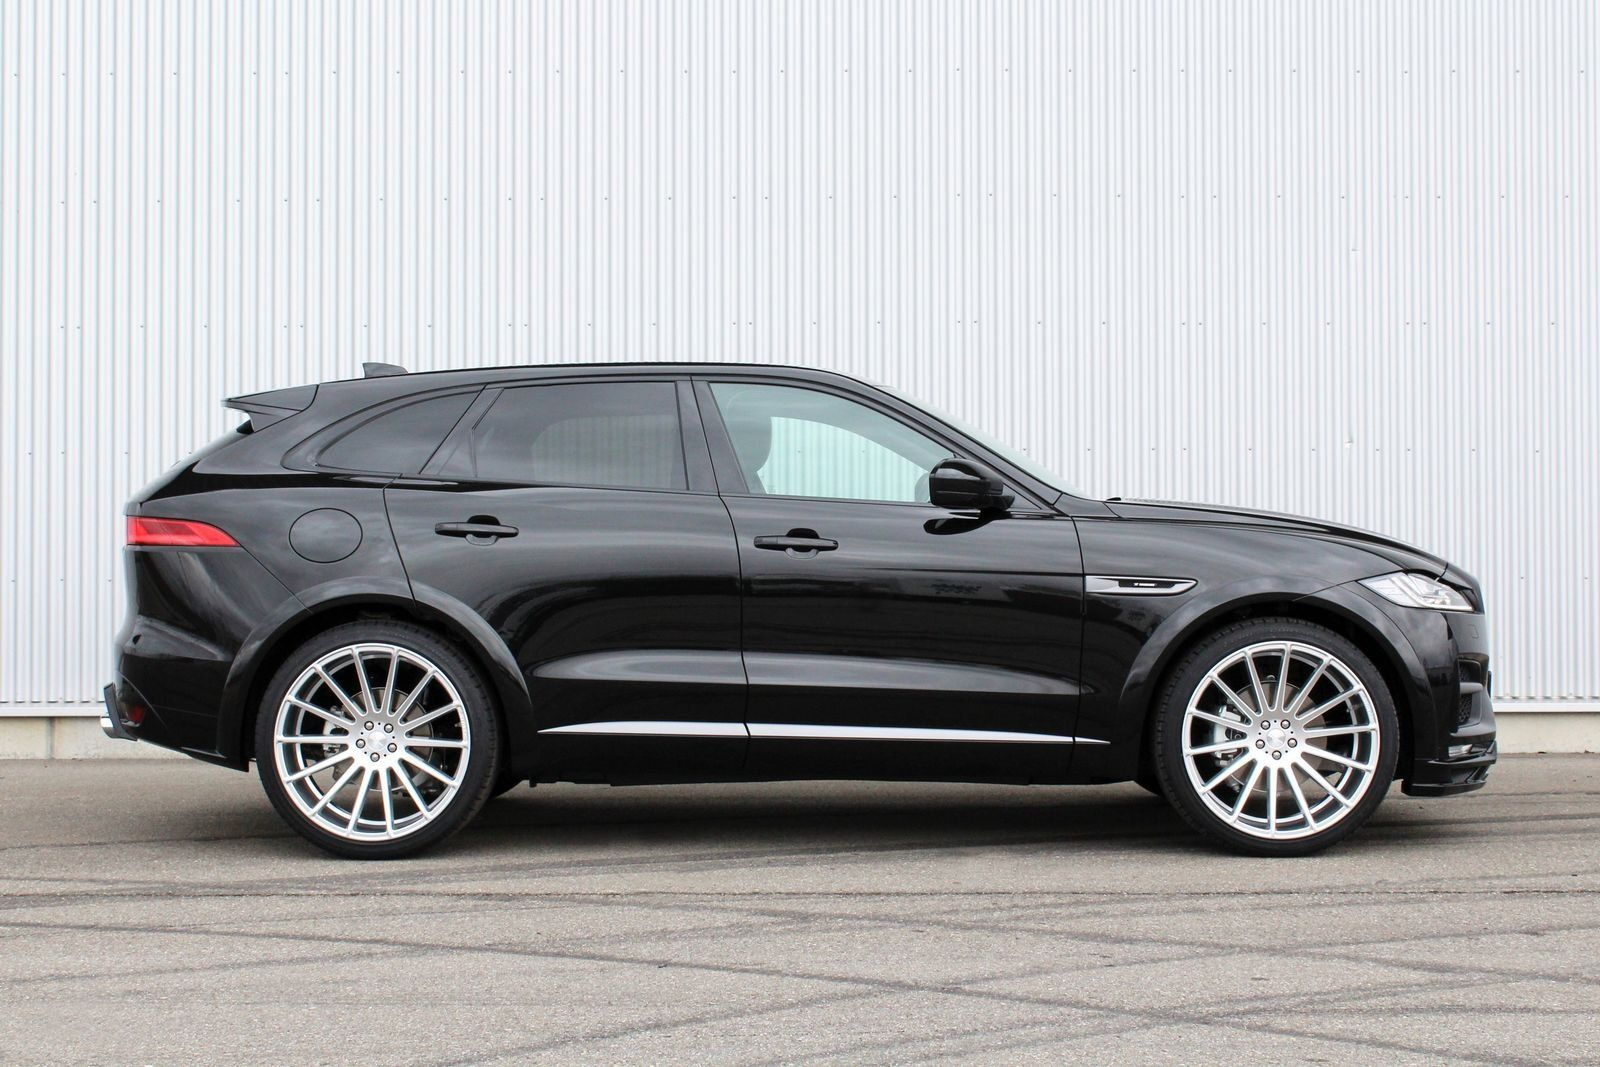 All Black Sinister Jaguar F Pace Gets Custom Parts Black Jaguar Car Jaguar Fpace Jaguar Car